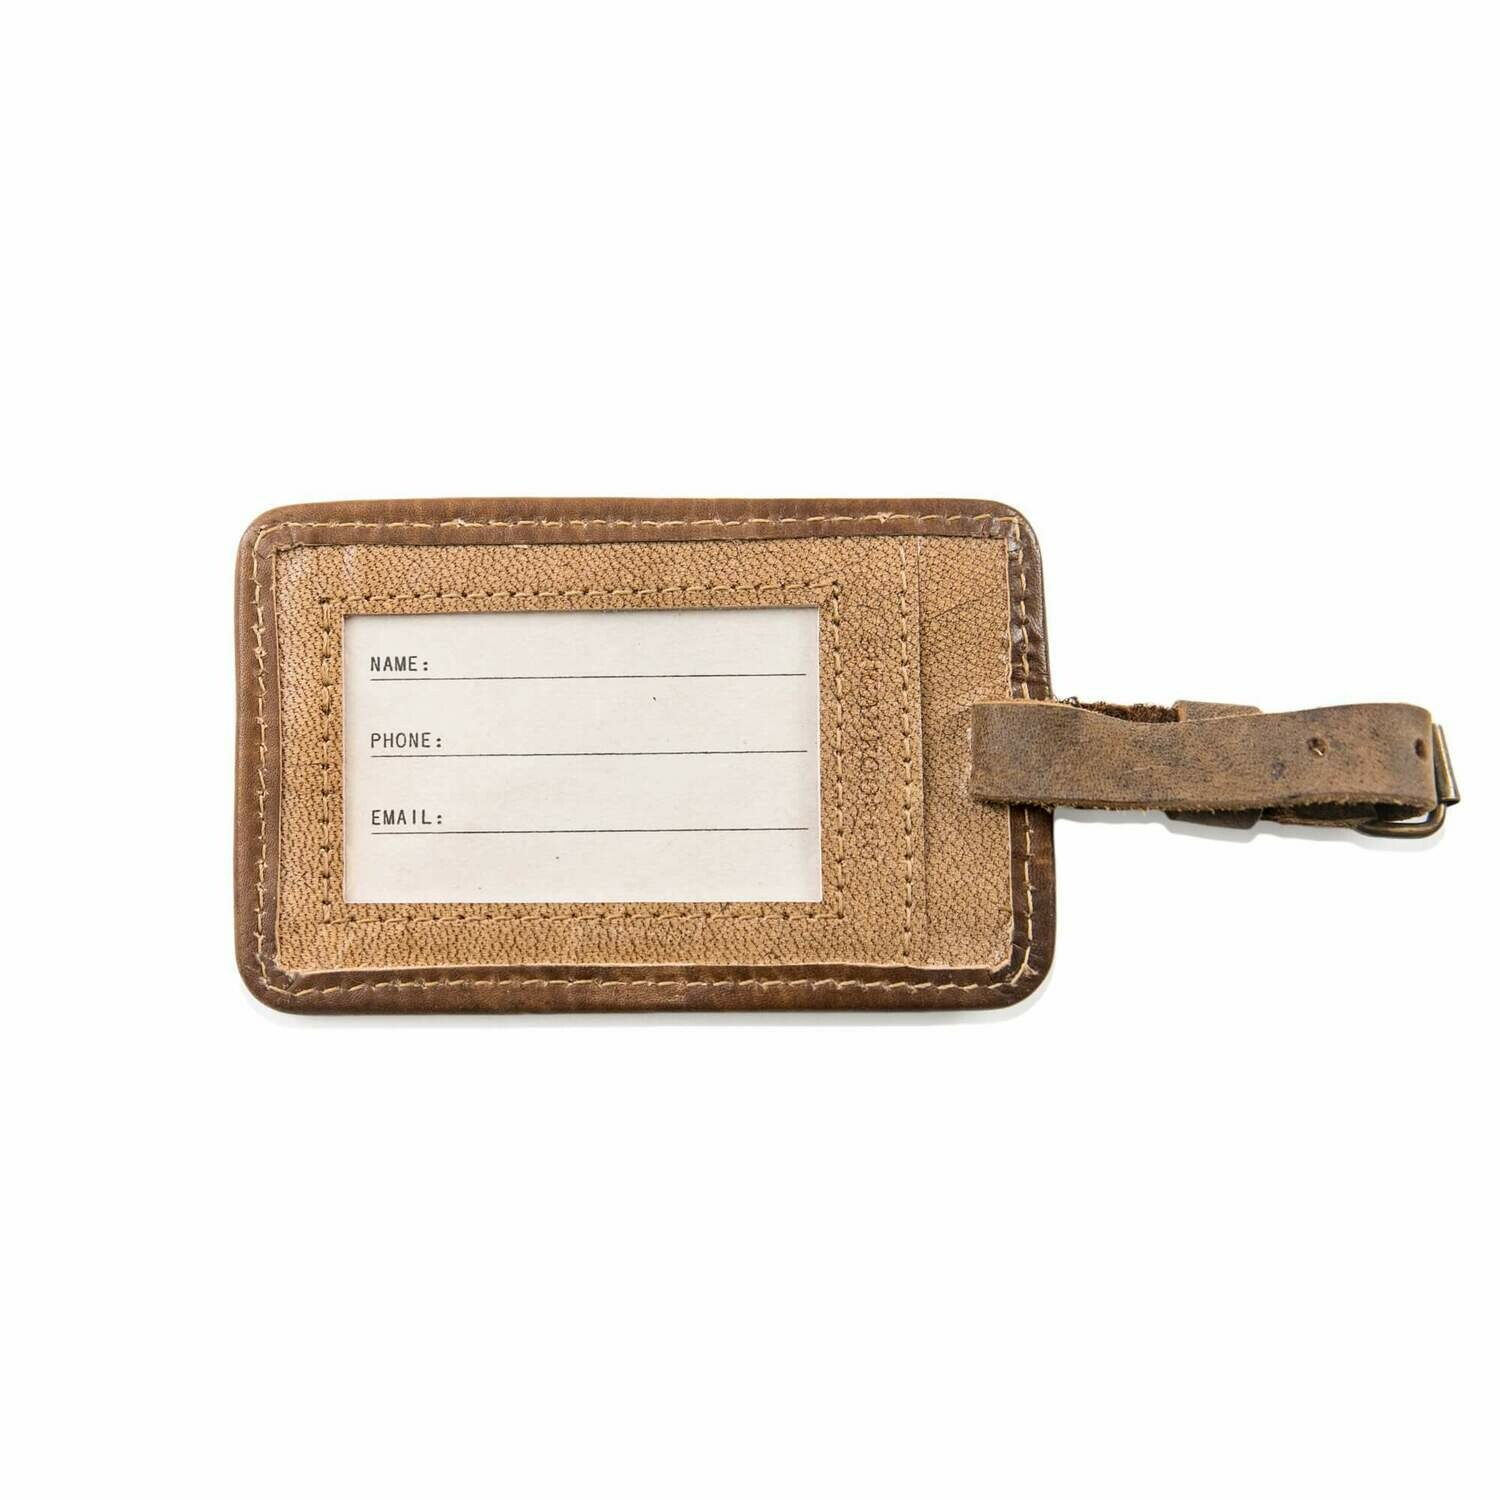 J.R.R. Tolkien Leather Luggage Tag